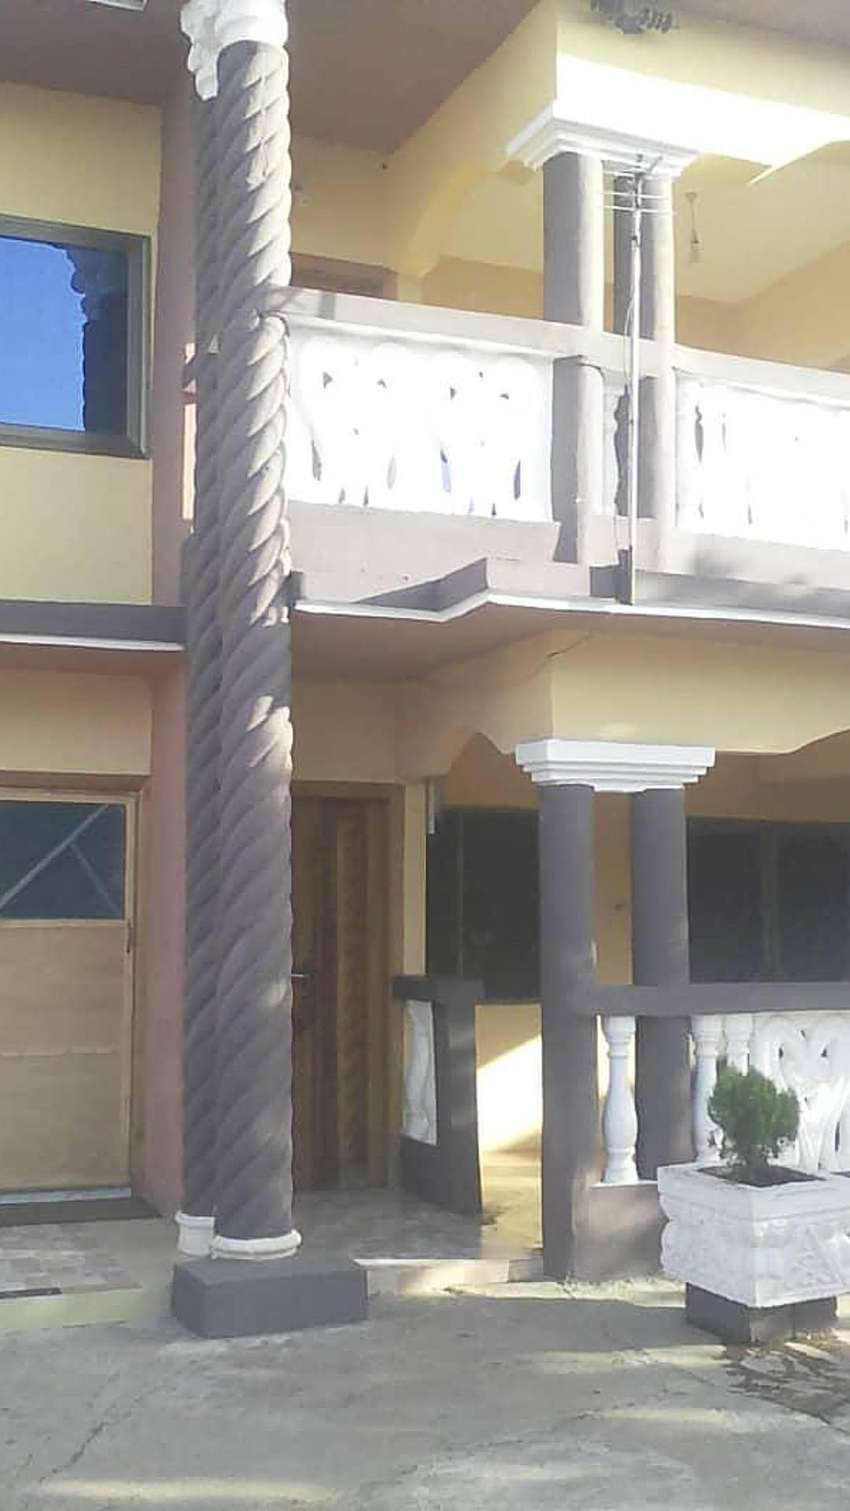 Executive Chamber & hall self contained at North Kaneshie 600Gh 1/hal 0